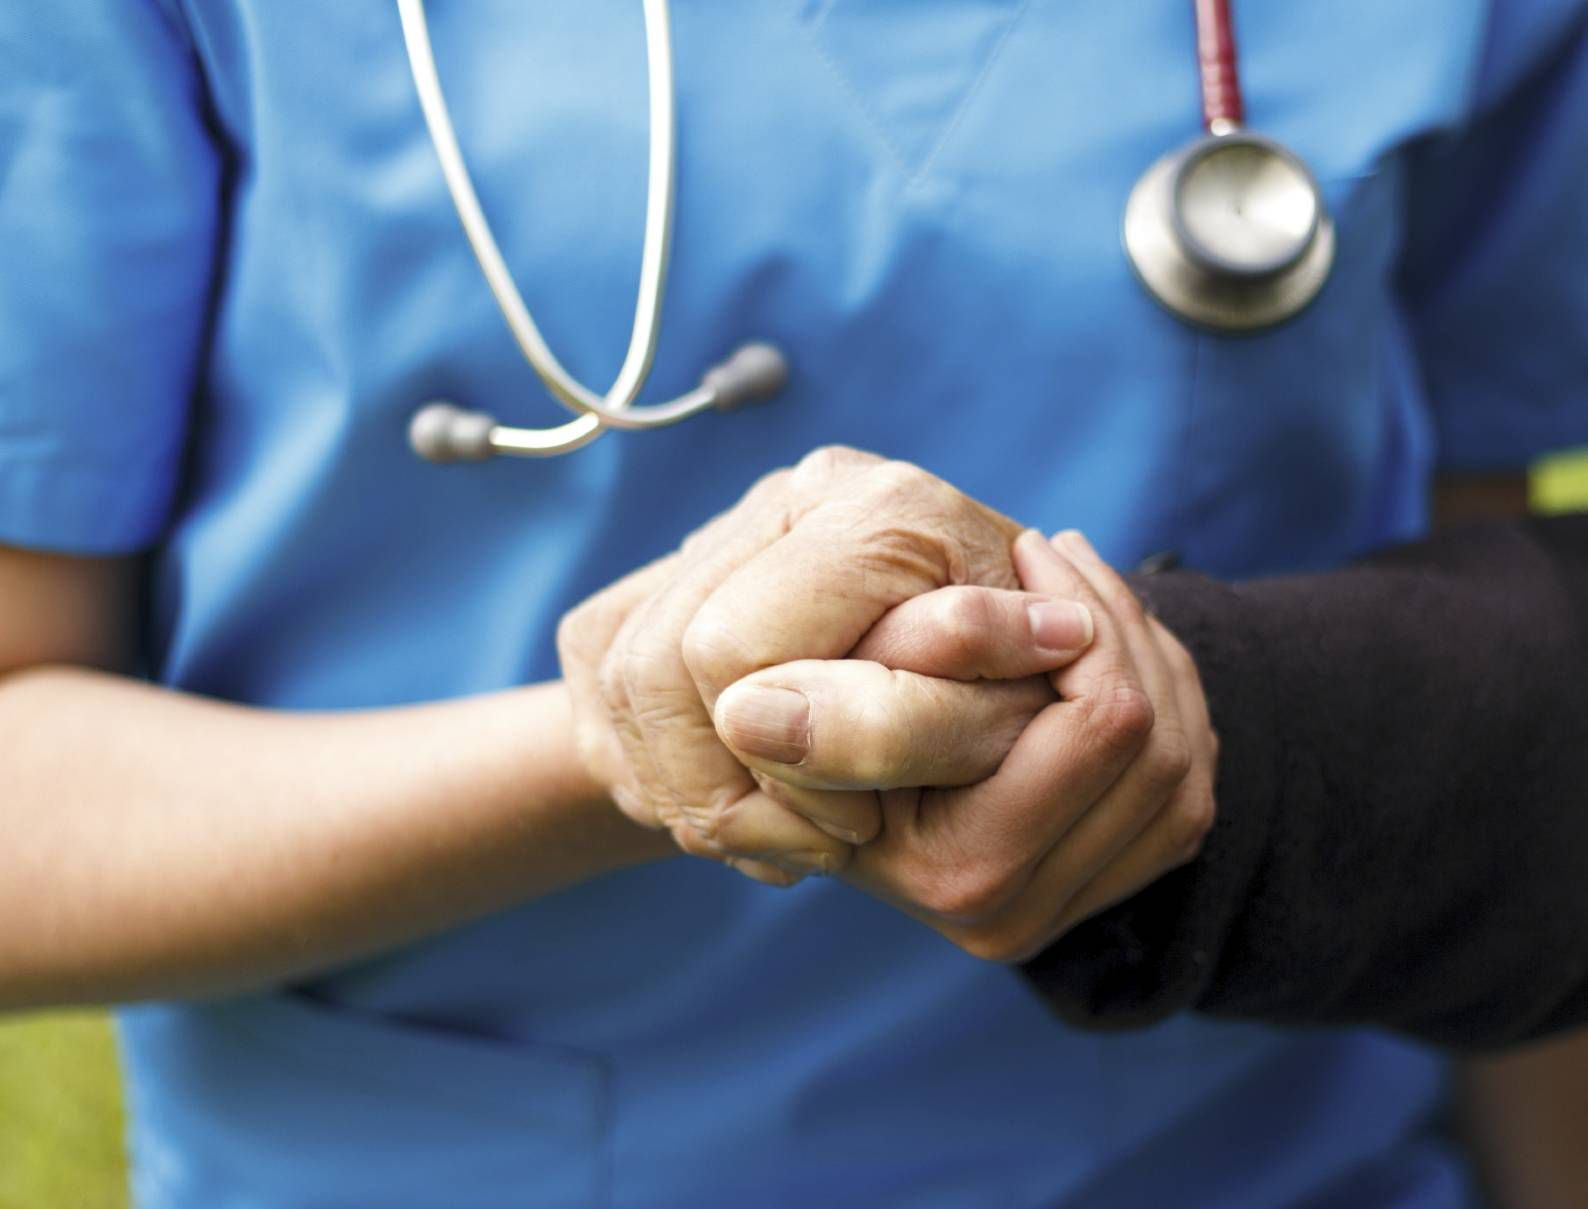 Medically assisted dying laws are changing, and it's about time